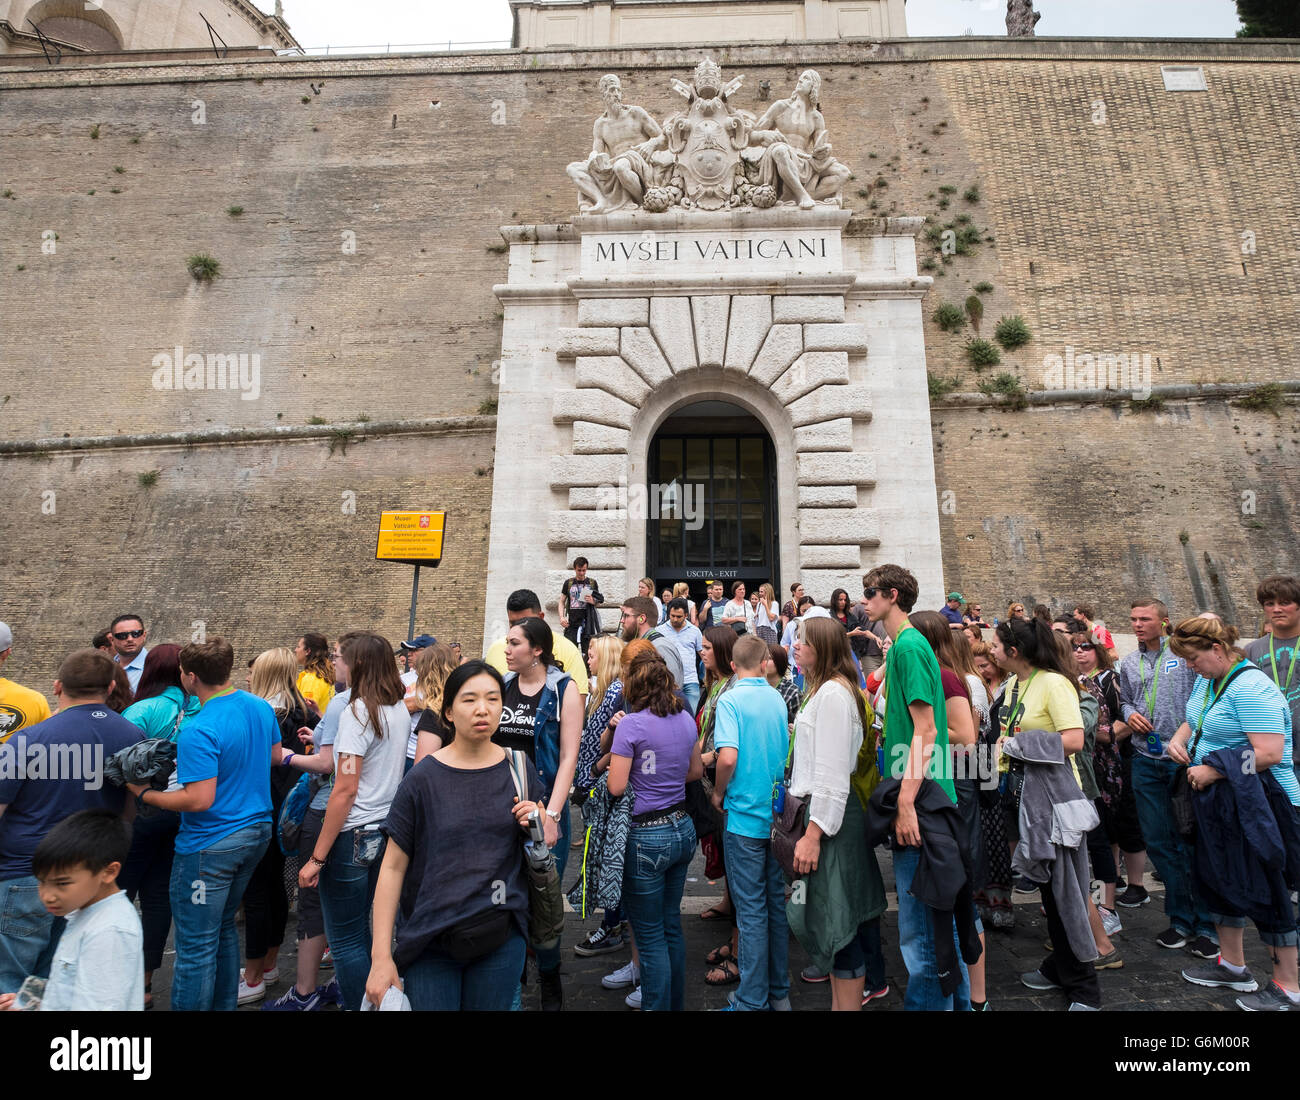 Tourists leaving the Vatican Museum in Rome, Italy - Stock Image